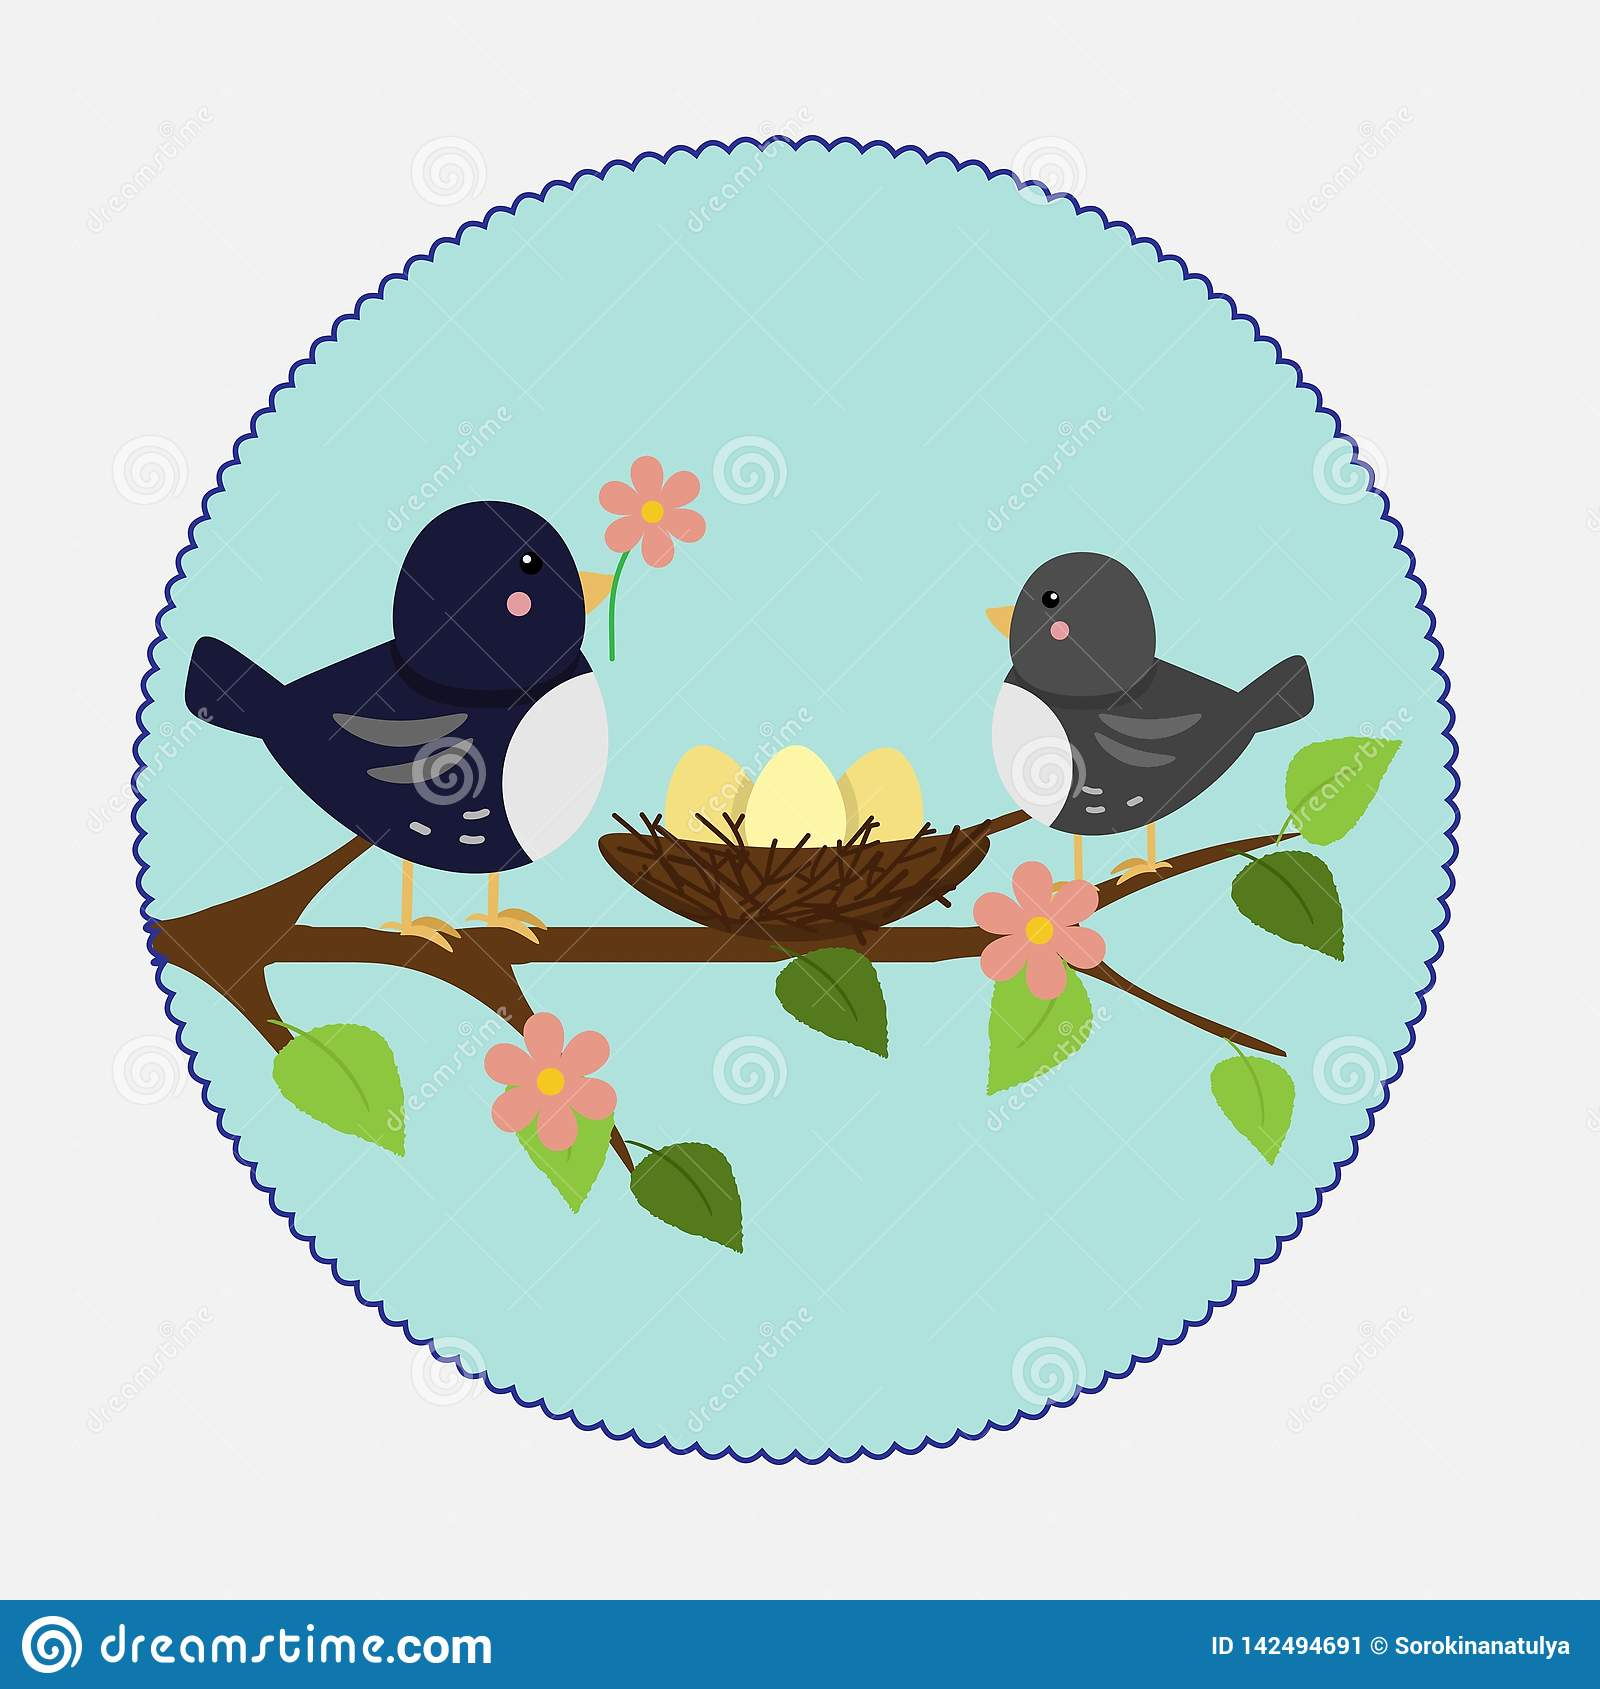 Vector illustration in flat style. Branch nest and birds